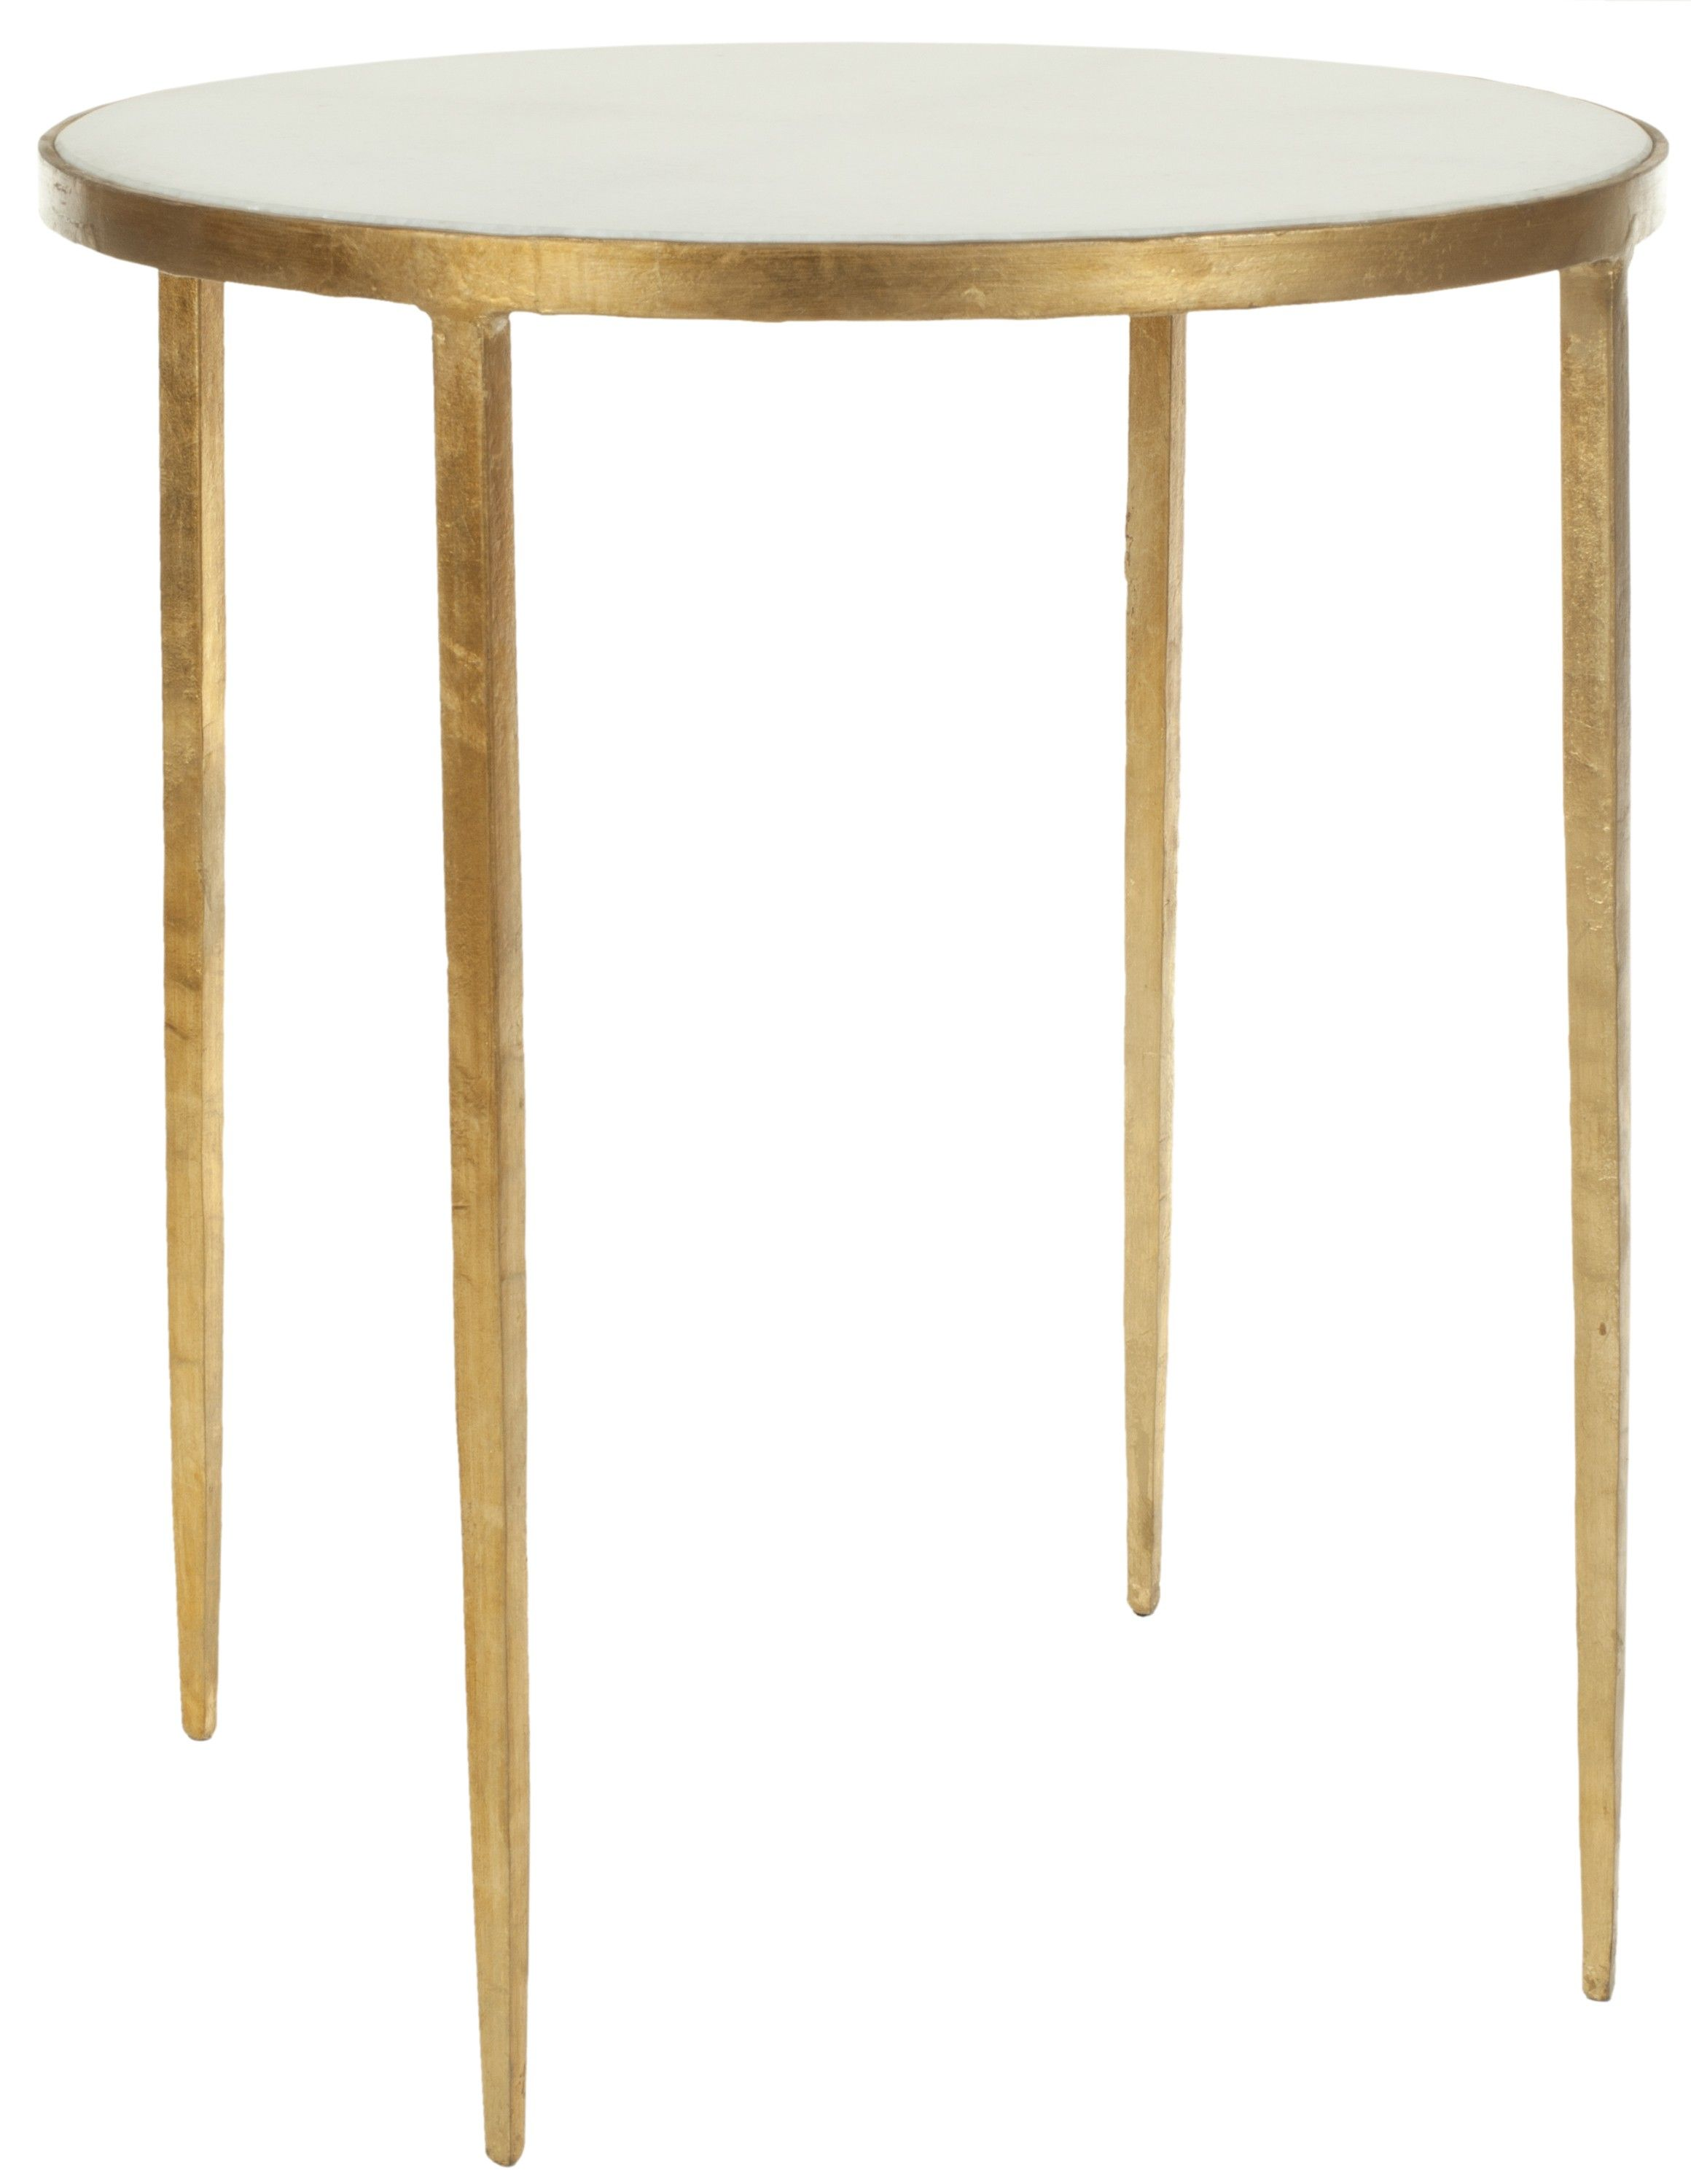 storage ott round cabinet target modern kijij table for accent gold unique kijiji glass and tall tables white furnitur living threshold bench decorative room outdoor antique